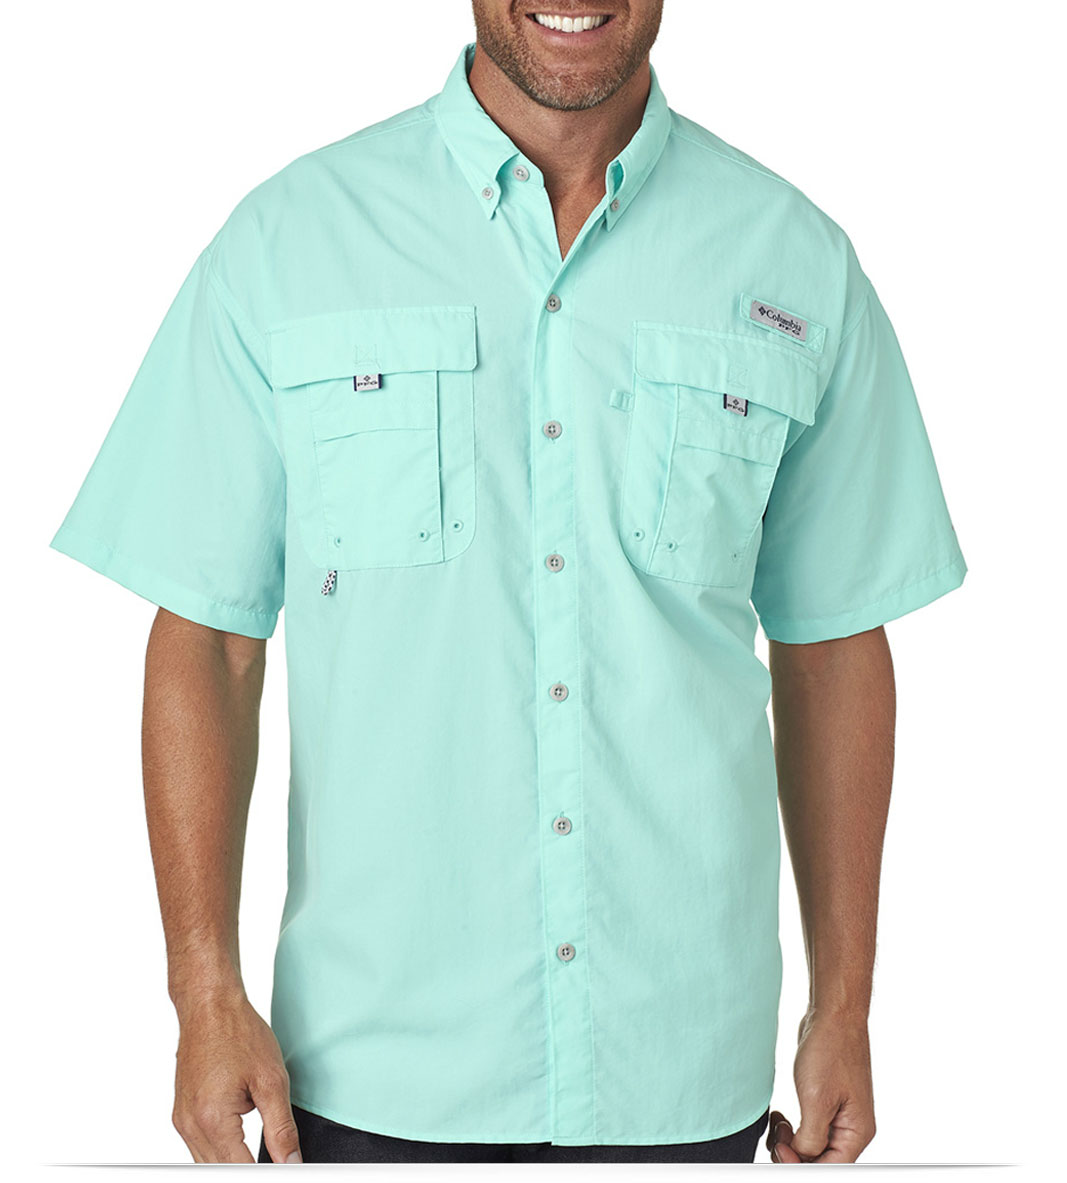 817ef2484c0 Custom Embroidered Columbia Men's Bahama II Short-Sleeve Shirt Online